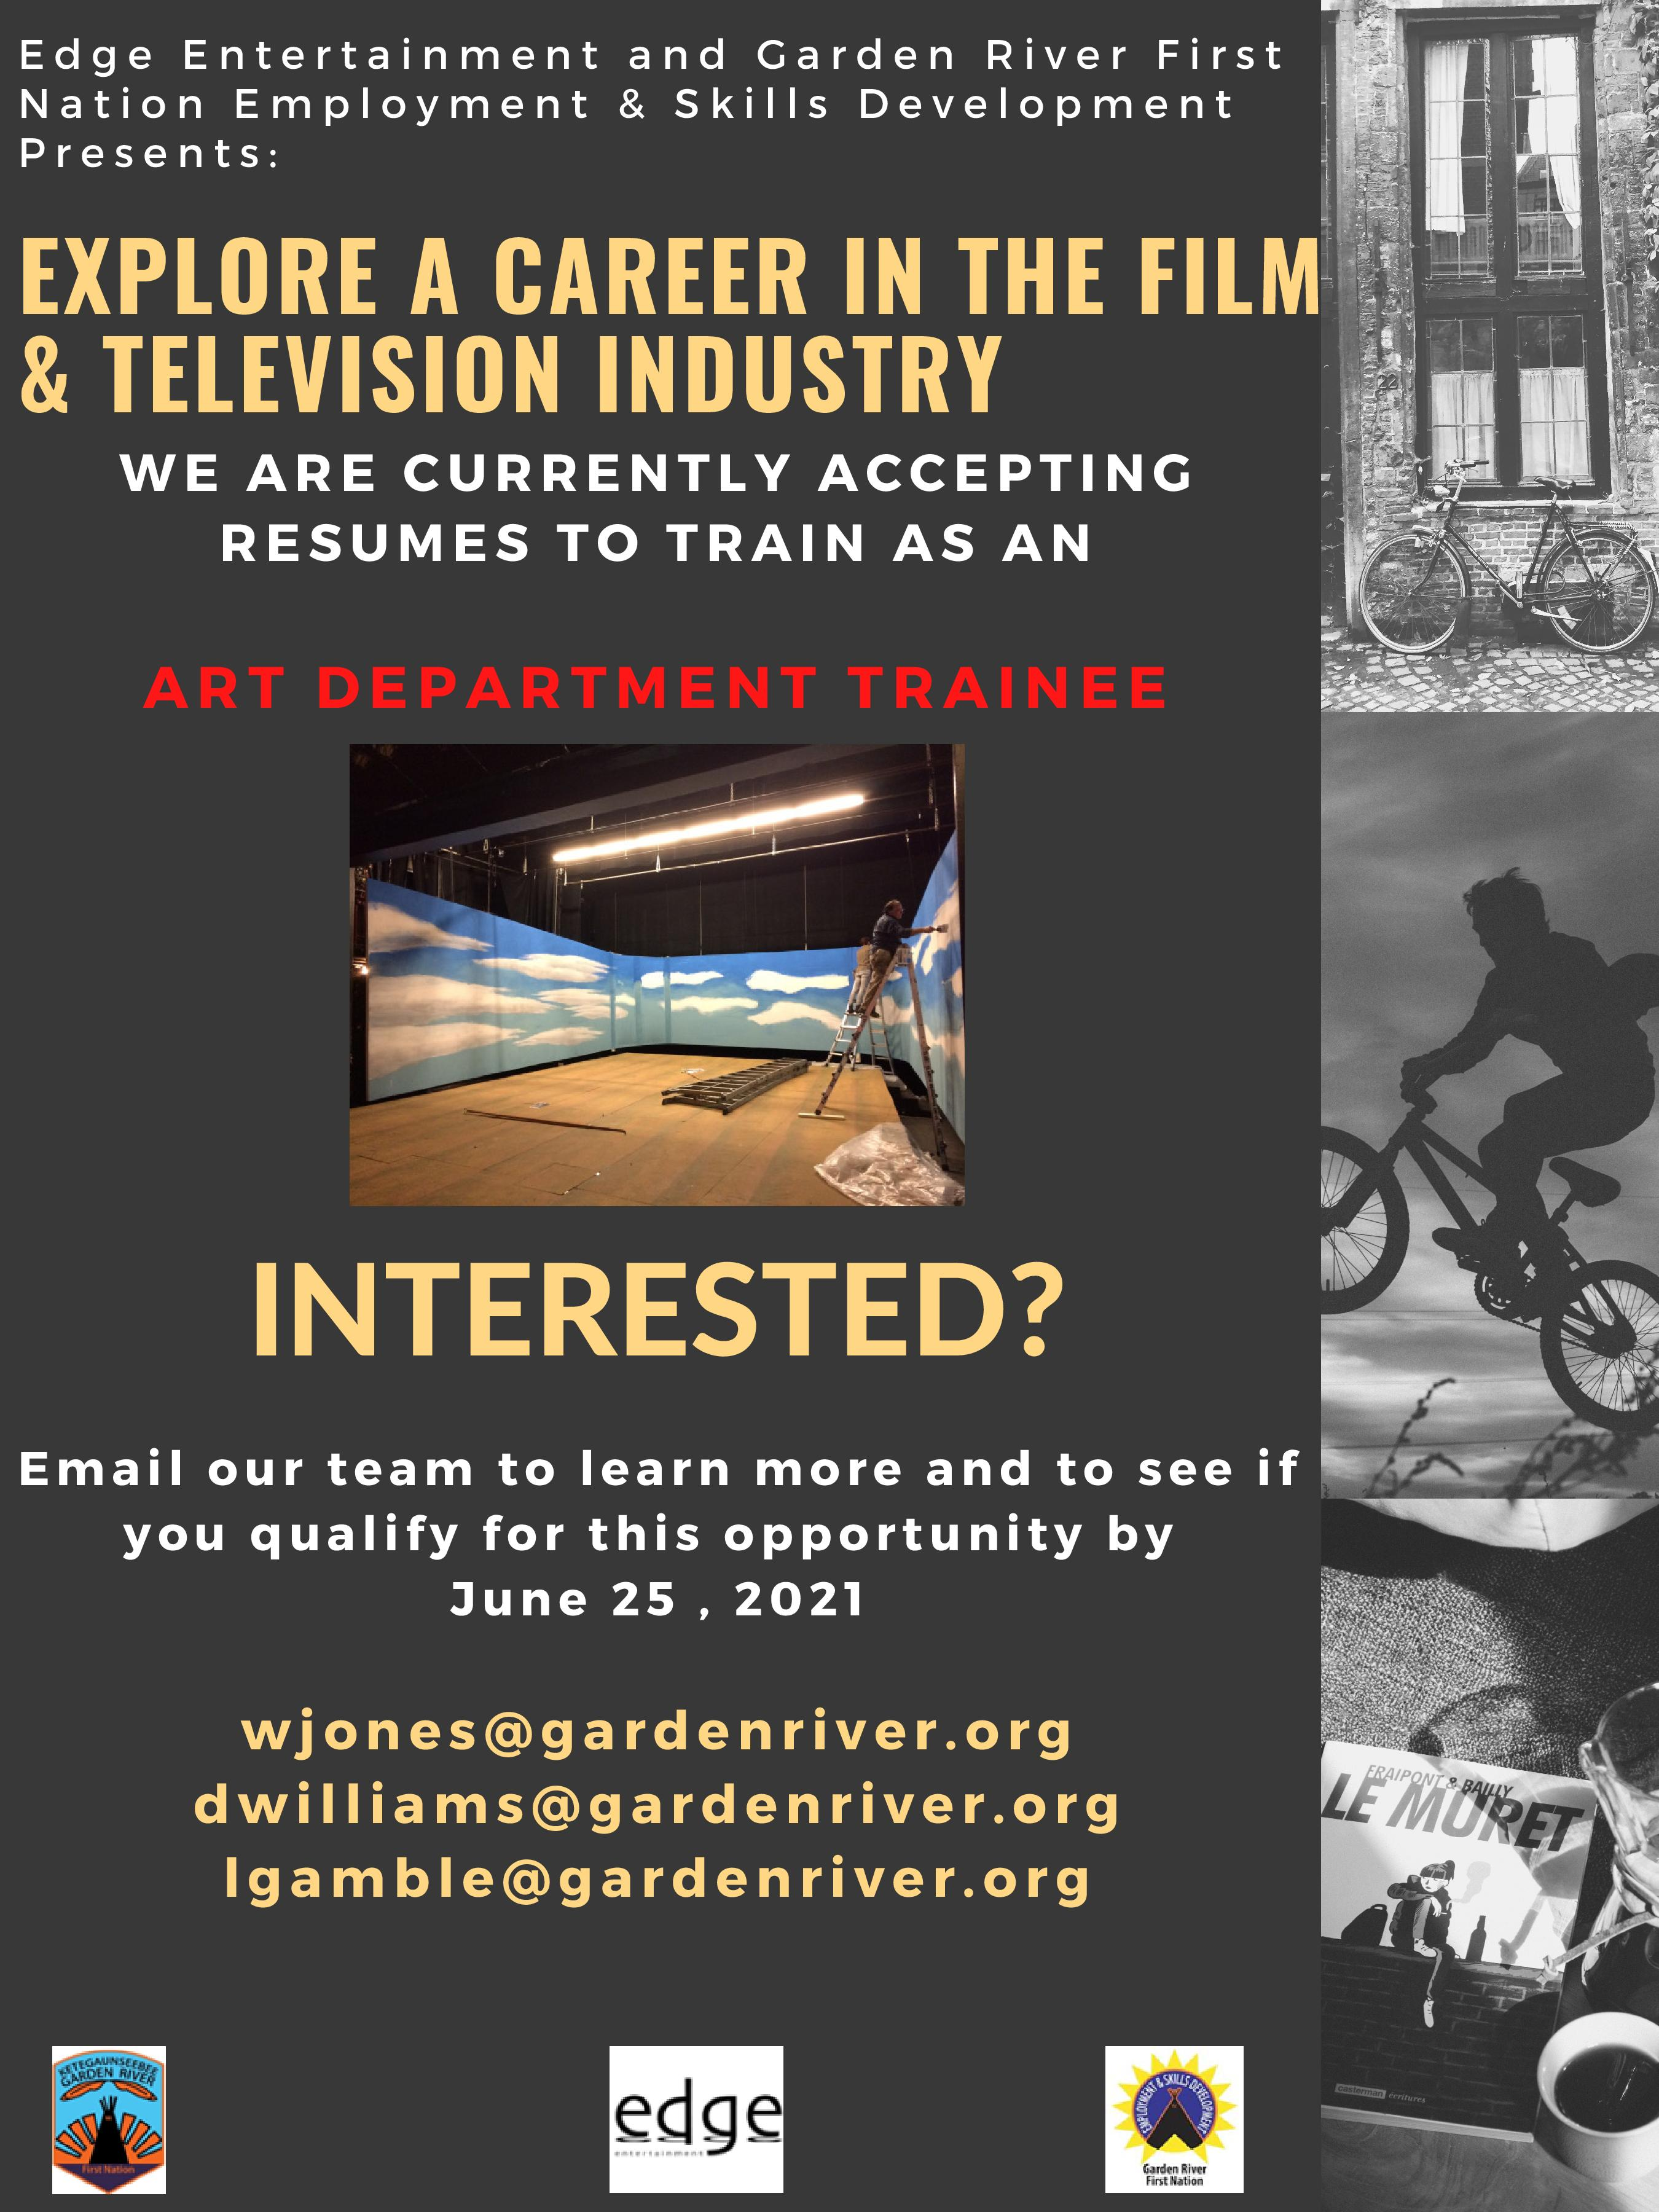 GRFN Employment Skills & Development – Explore a Career in the Film & Television Industry